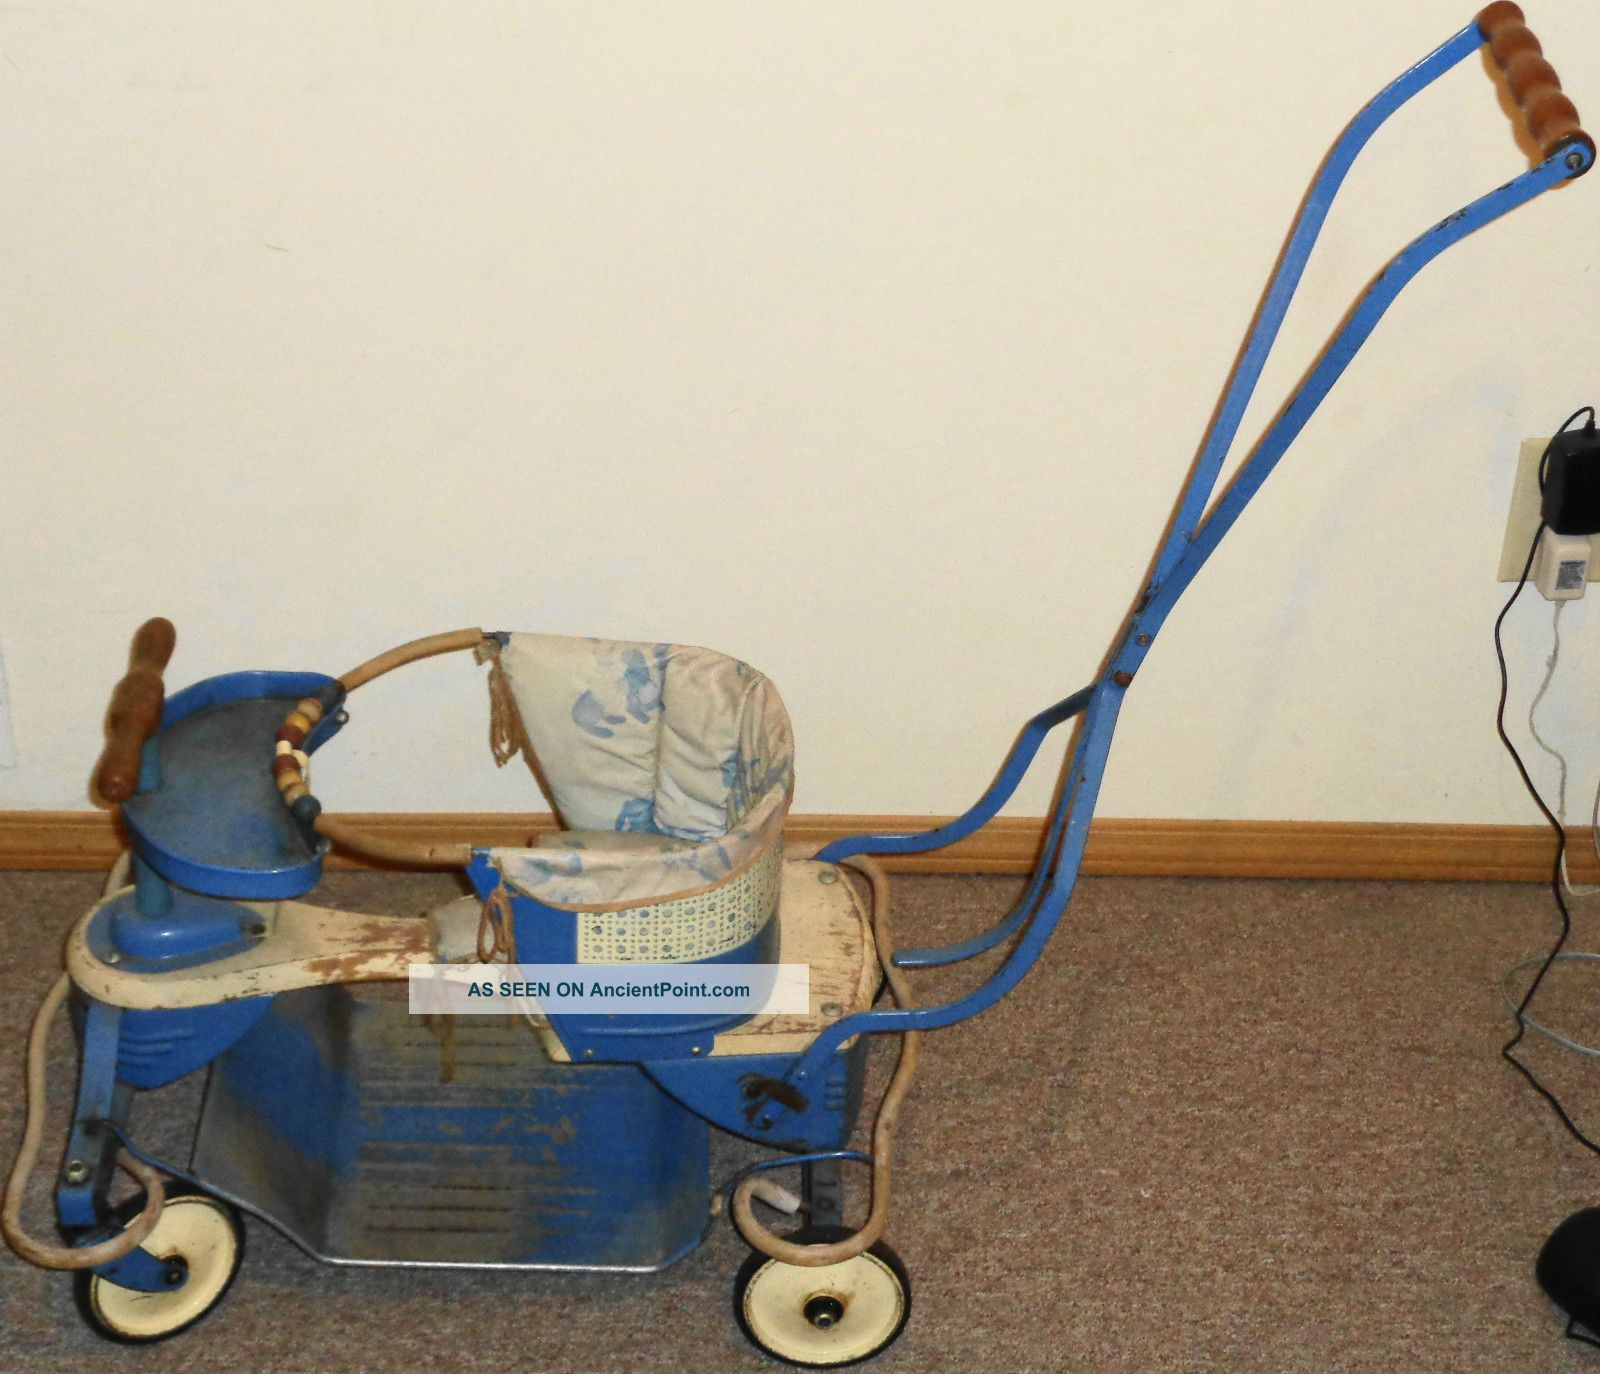 Vintage Deluxe 1948 Taylor Tot Baby Stroller W/ Pad Take A Look Baby Carriages & Buggies photo